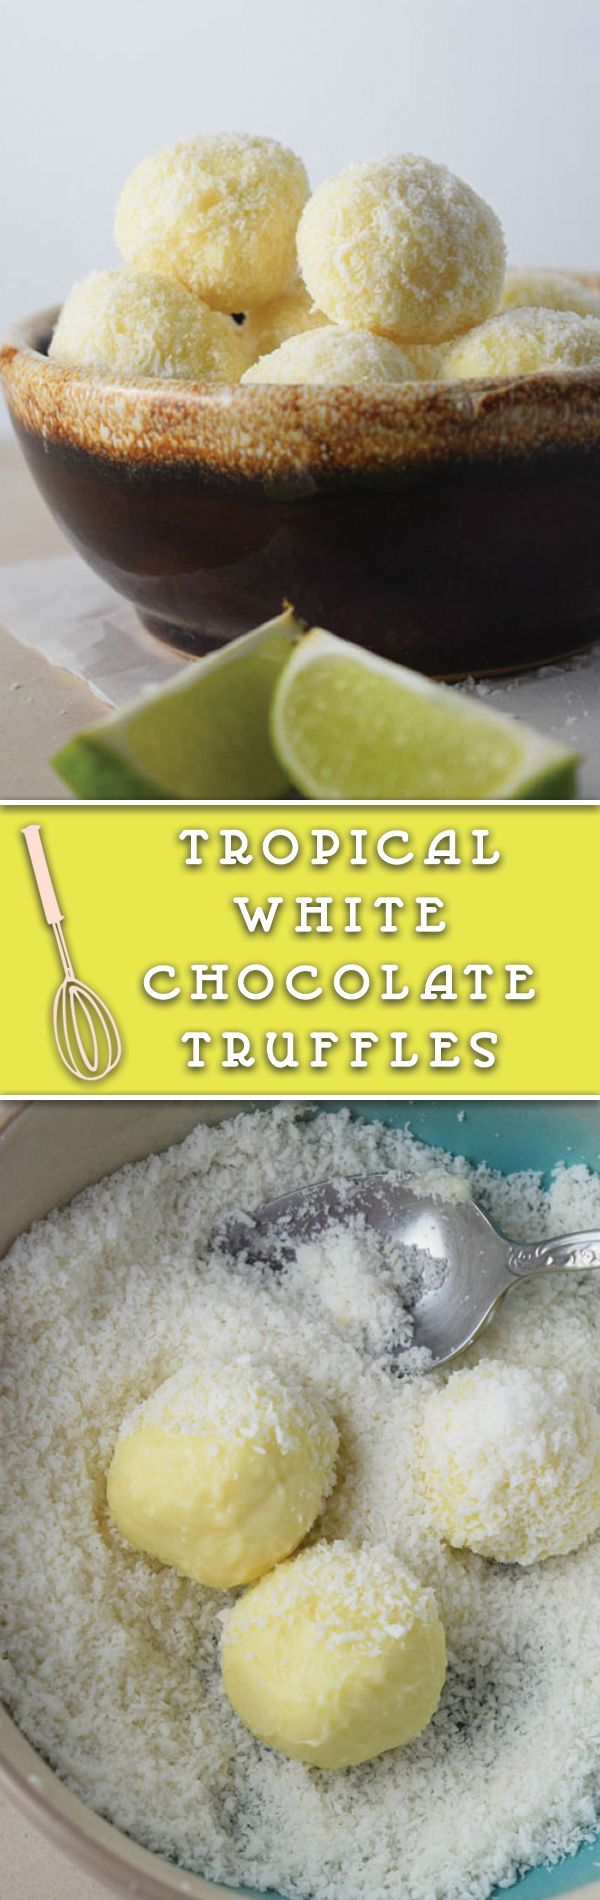 Tropical White Chocolate Truffles - Delicious white chocolate truffles coated with coconut. They are a perfect treat!